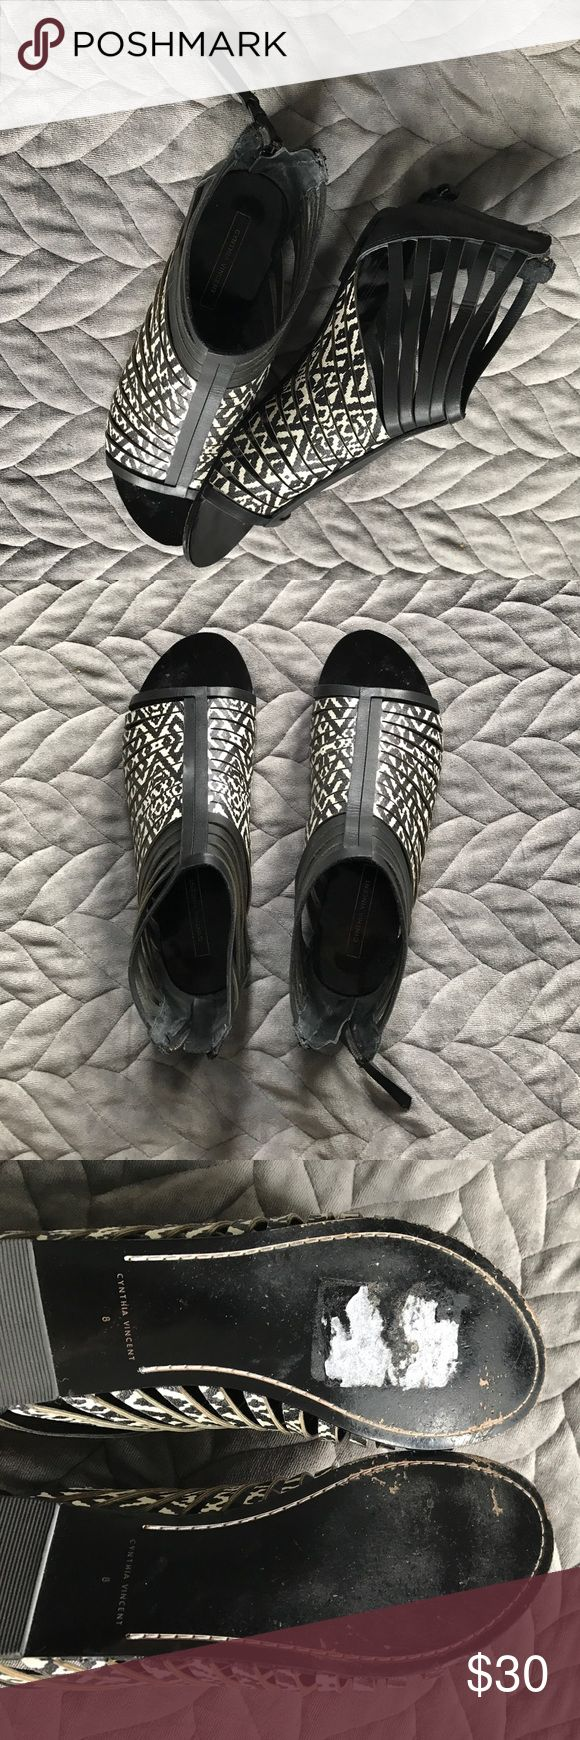 Cynthia Vincent black and white caged sandals Black and white caged sandal! Size 8. Great used condition. Only signs of wear on the bottom of the shoe. Make me an offer! Cynthia Vincent Shoes Sandals